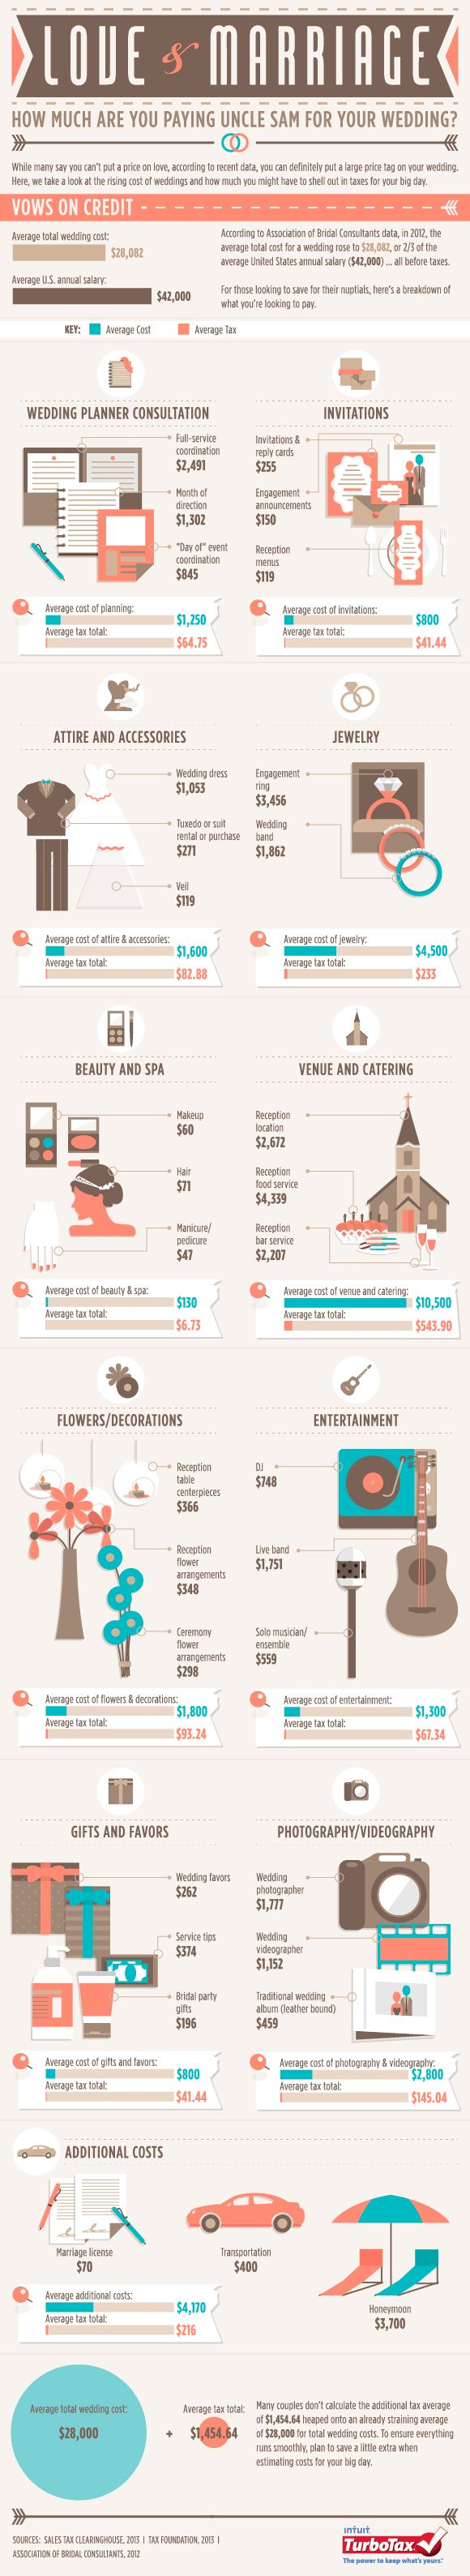 wedding-budget-4-01052014nz